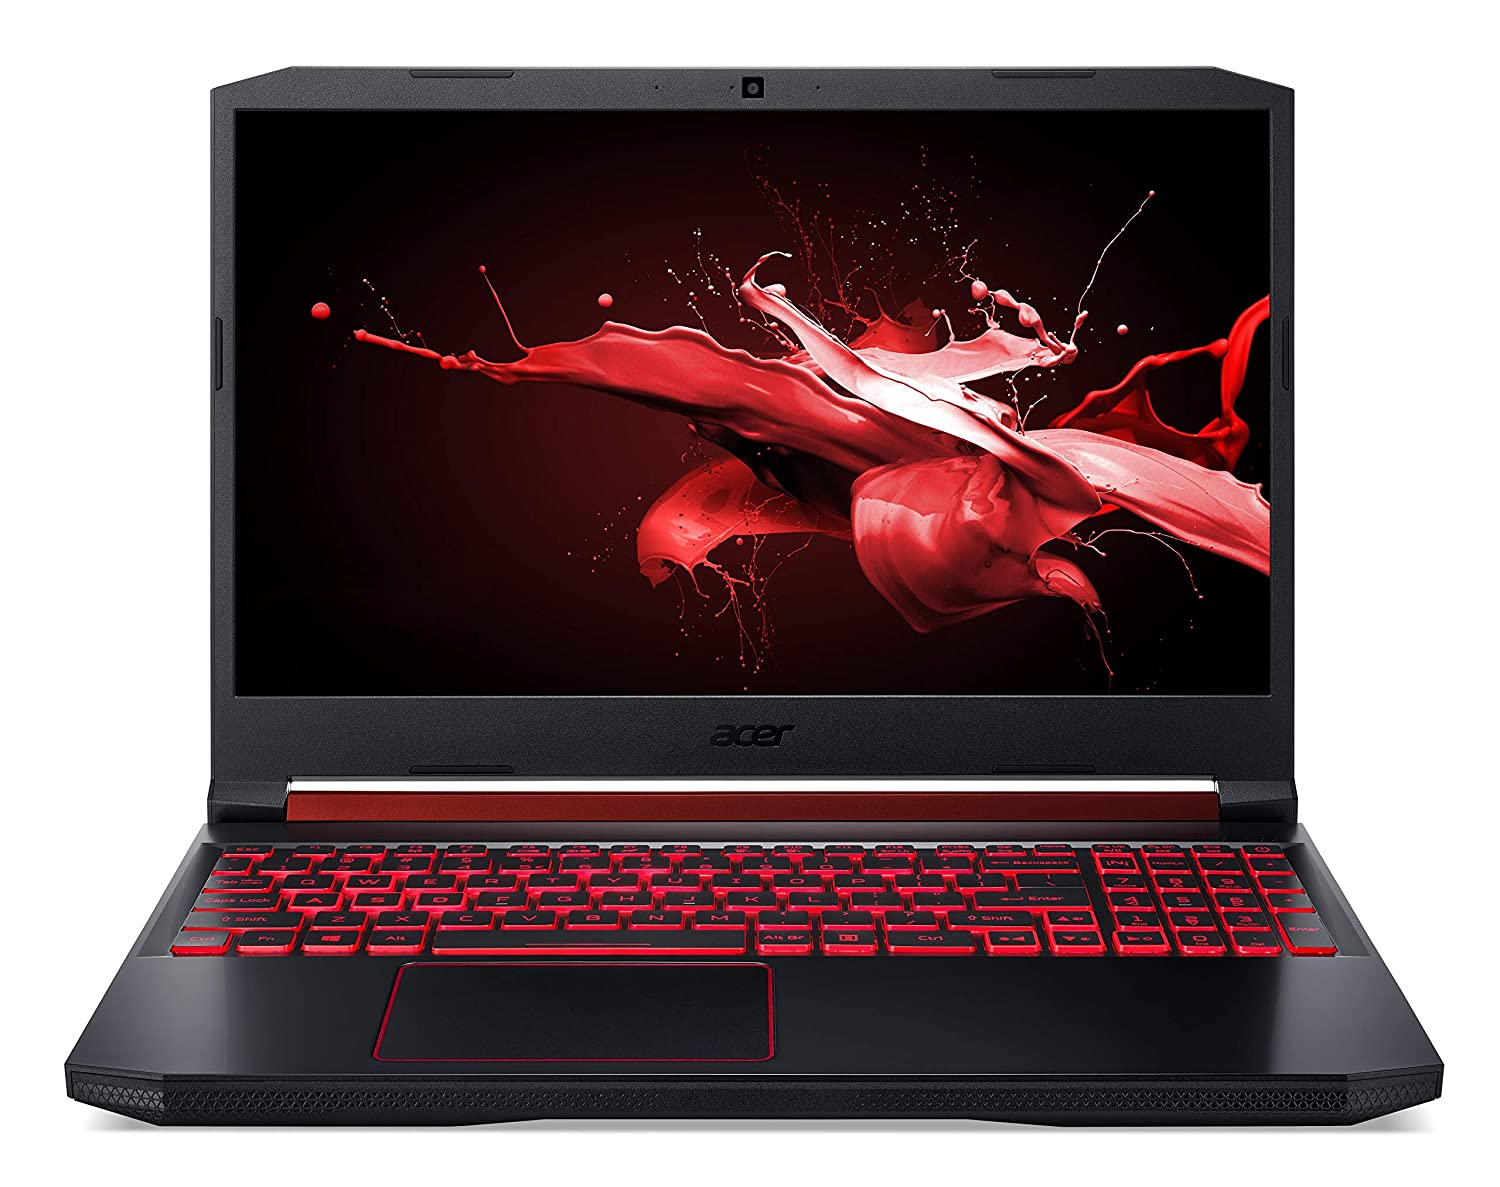 Acer Nitro 5 Intel Core i5-9th Gen 15.6-inch Display 1920 x 1080 Thin and Light Gaming Laptop (8GB Ram/1TB HDD/Windows 10 Home/GTX 1650 Graphics/Obsidian Black/2.3 Kgs), AN515-54